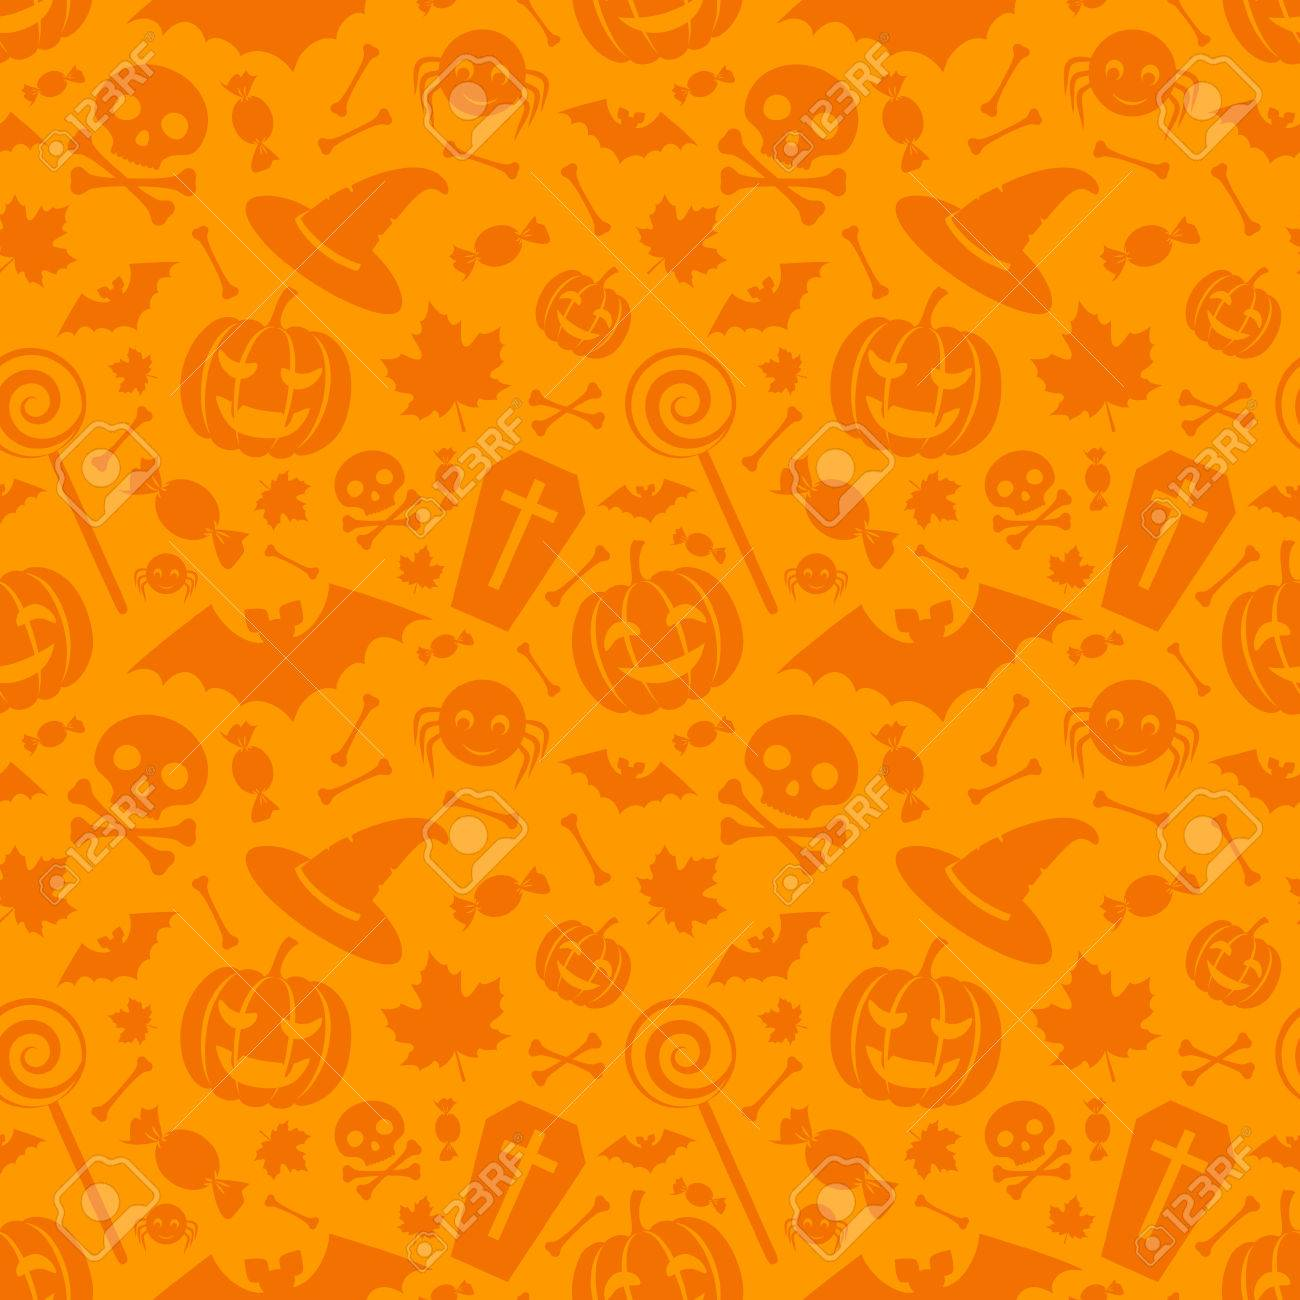 Cool Wallpaper Halloween Gold - 44142017-halloween-orange-festive-seamless-pattern-endless-background-with-pumpkins-skulls-bats-spiders-and-e  Image_4818.jpg